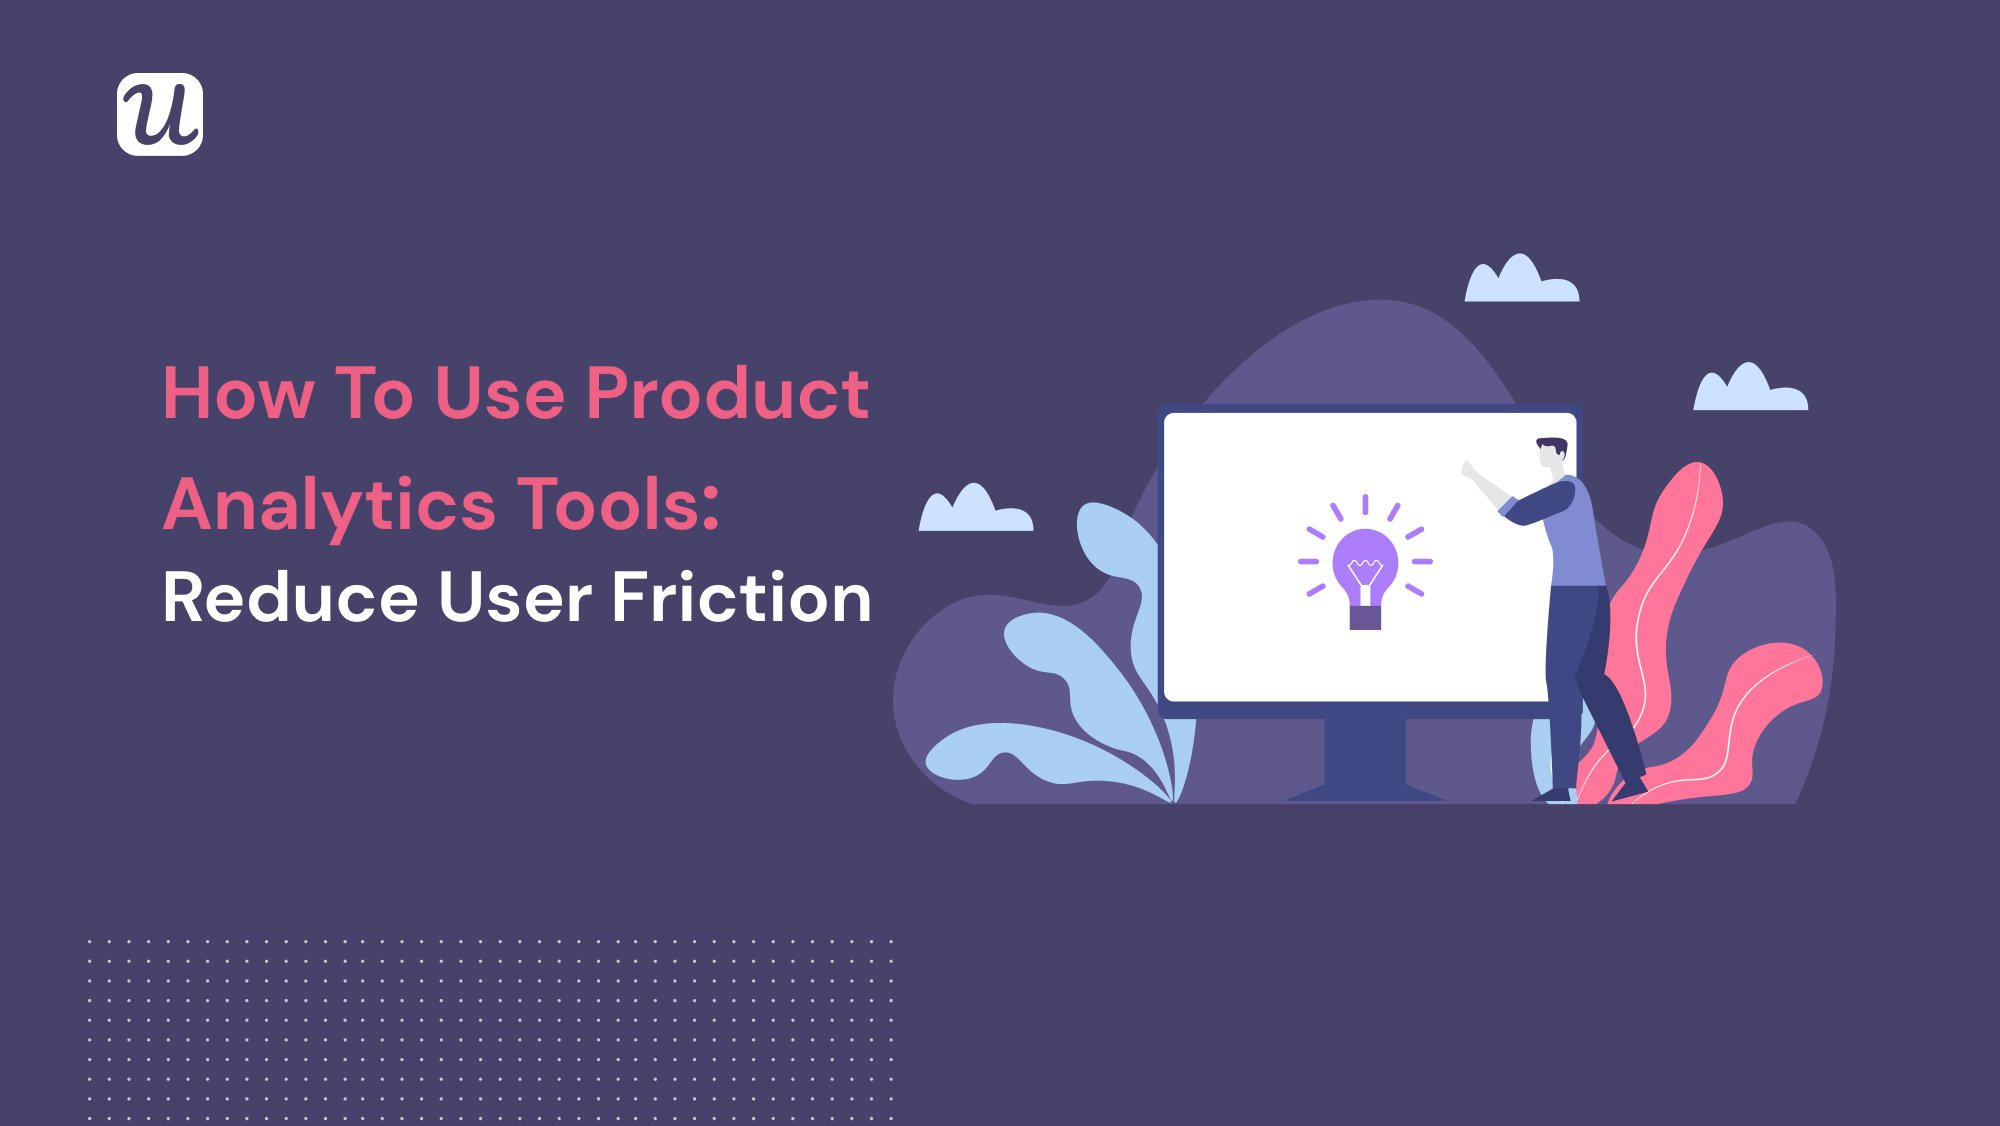 How to Use Product Analytics Tools to Reduce User Friction